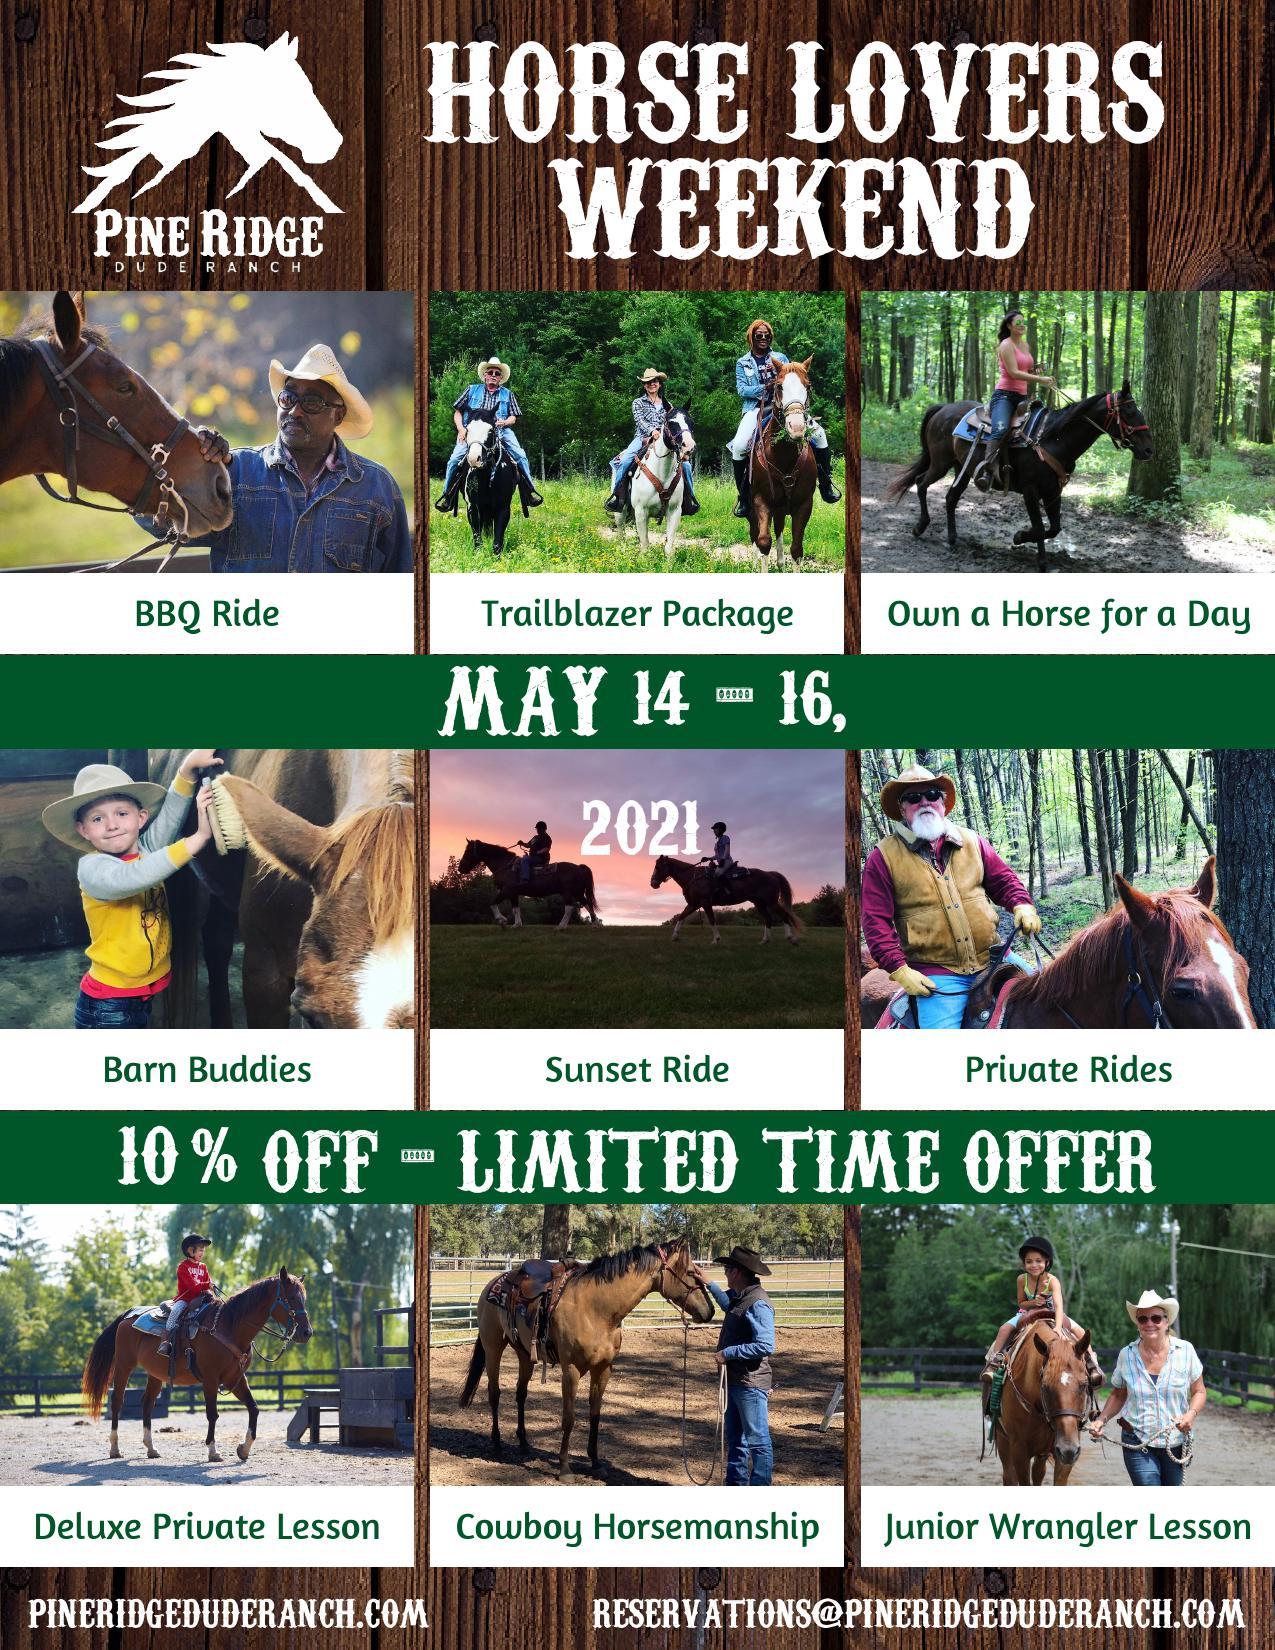 horse lovers weekend, bbq ride, trailbalzer package, own a horse for a day, barn buddies, sunset ride, prviate rides, deluxe private lesson, cowboy horsemanship, junior wrangler lesson, may 14-16, 2021, 10% off limited time offer, various photos of people on horseback